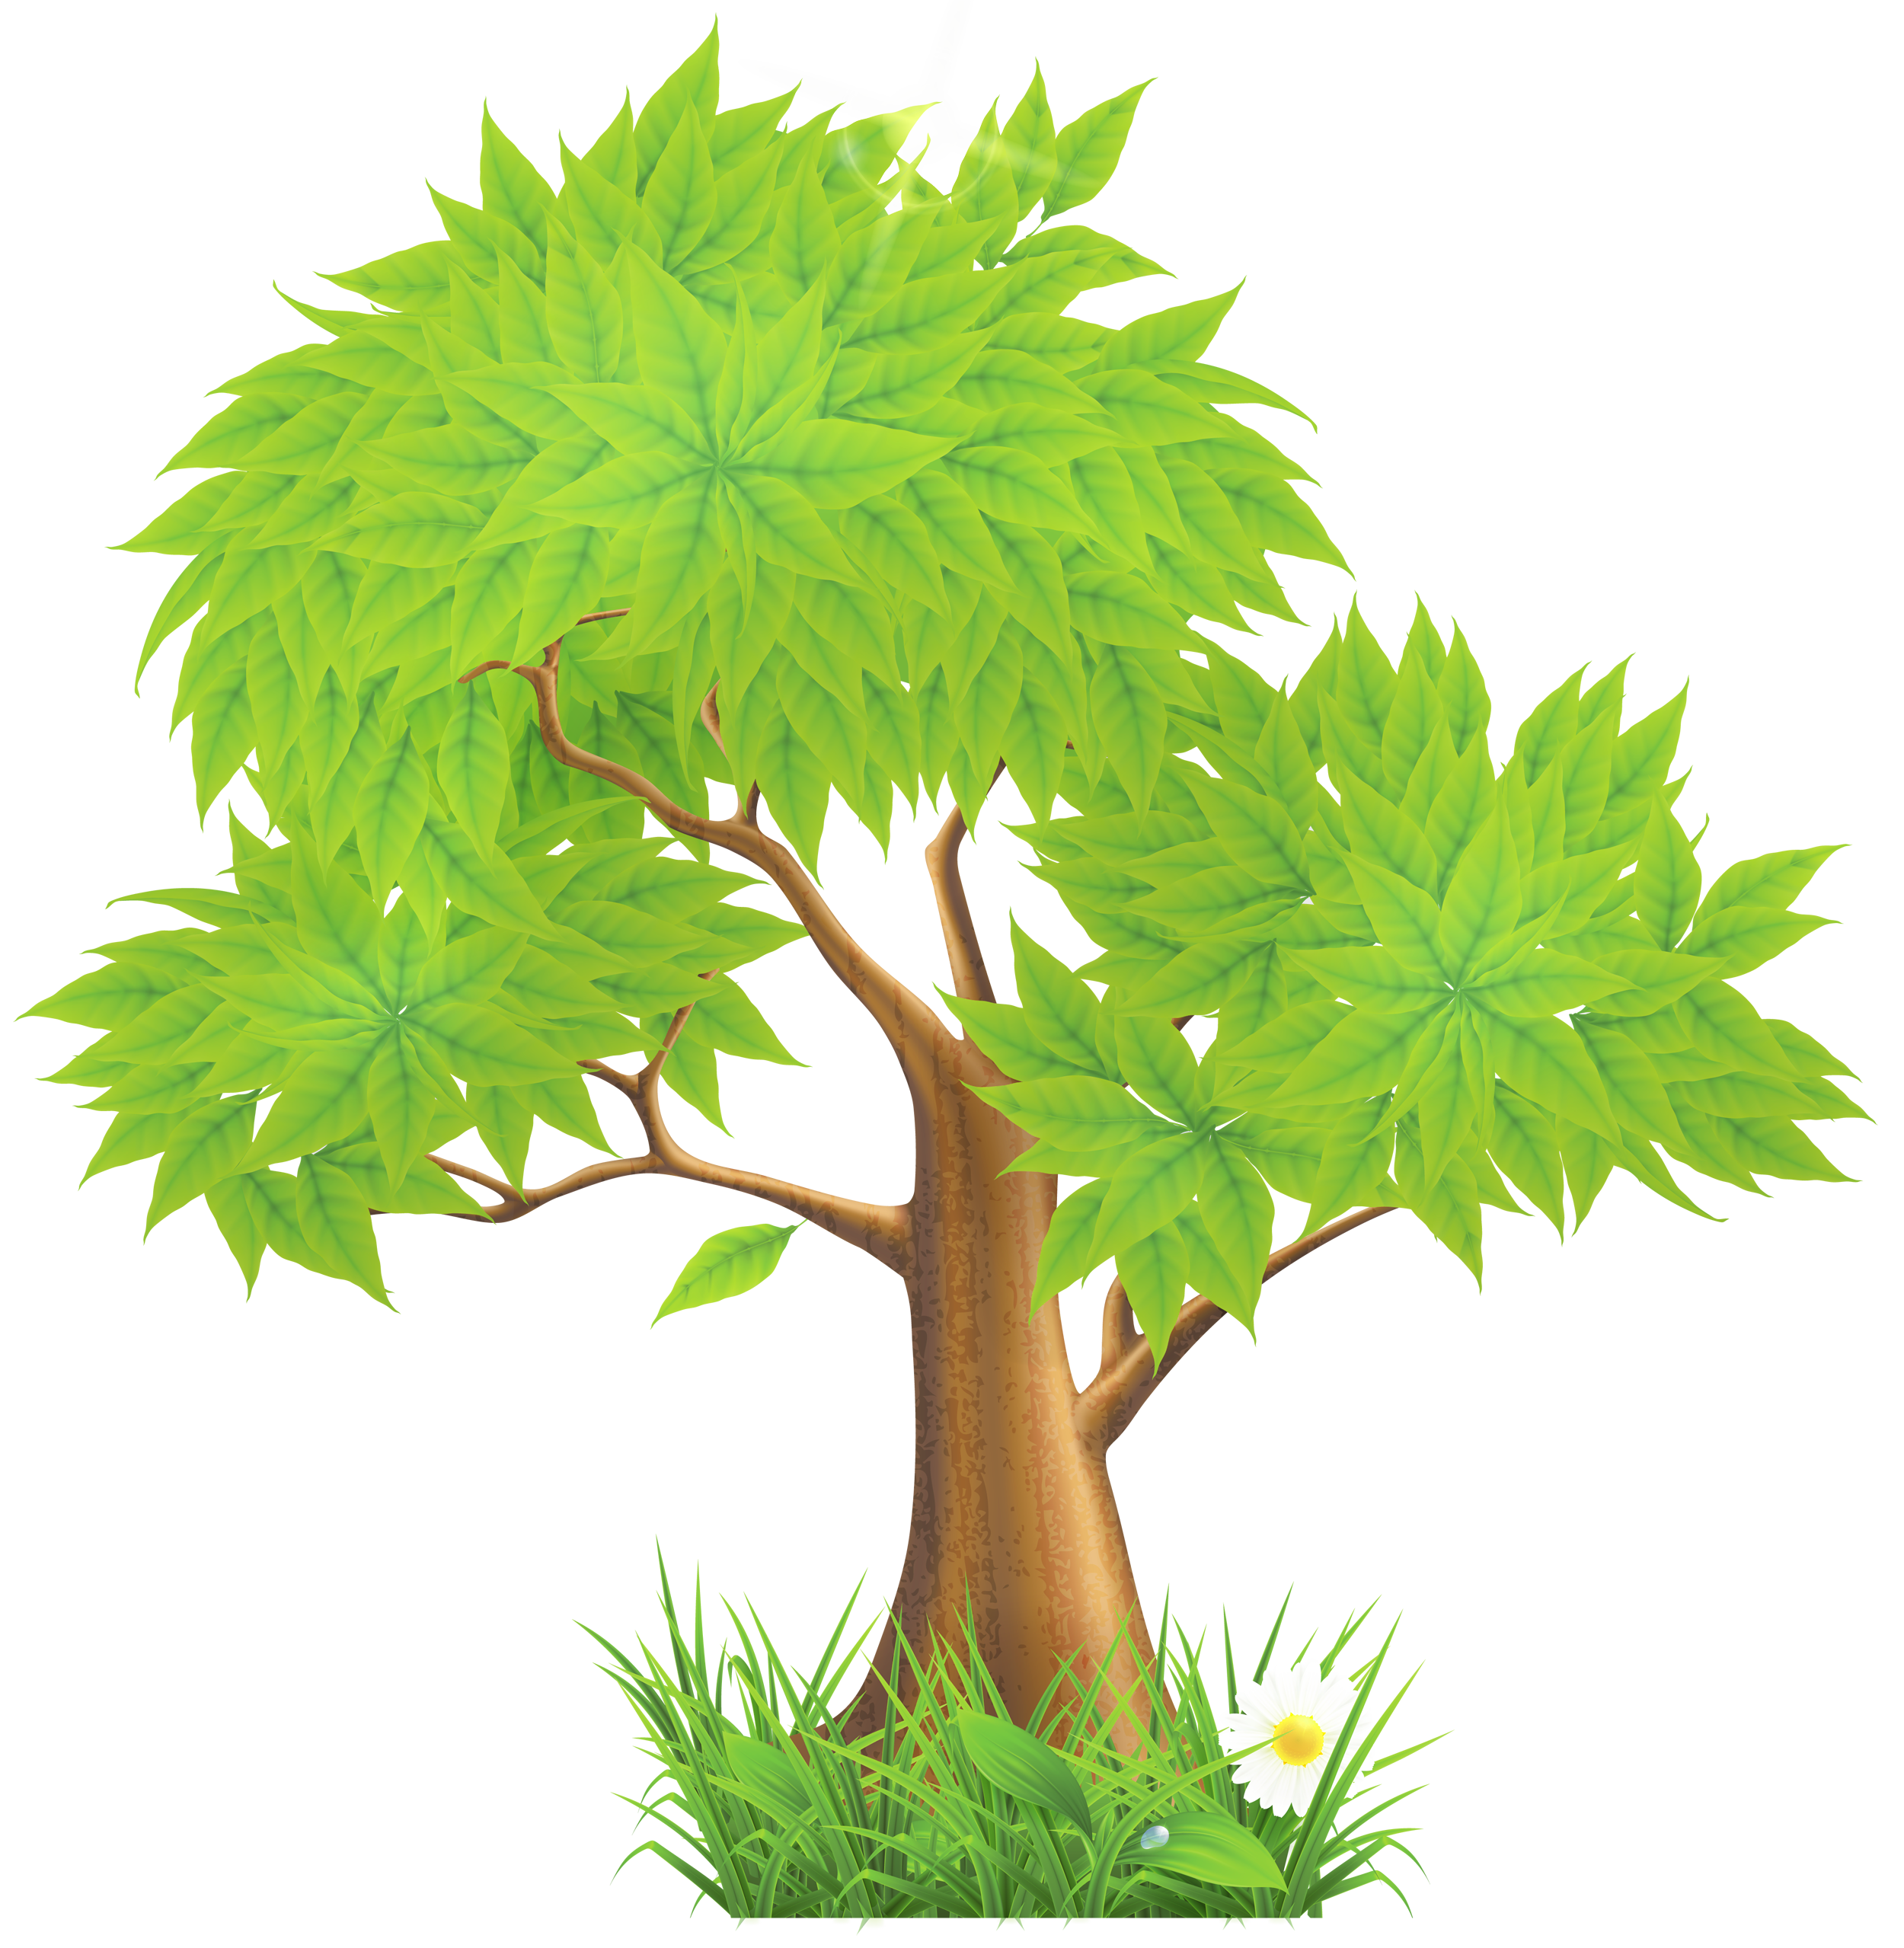 Tree clipart high resolution. Green painted png gallery